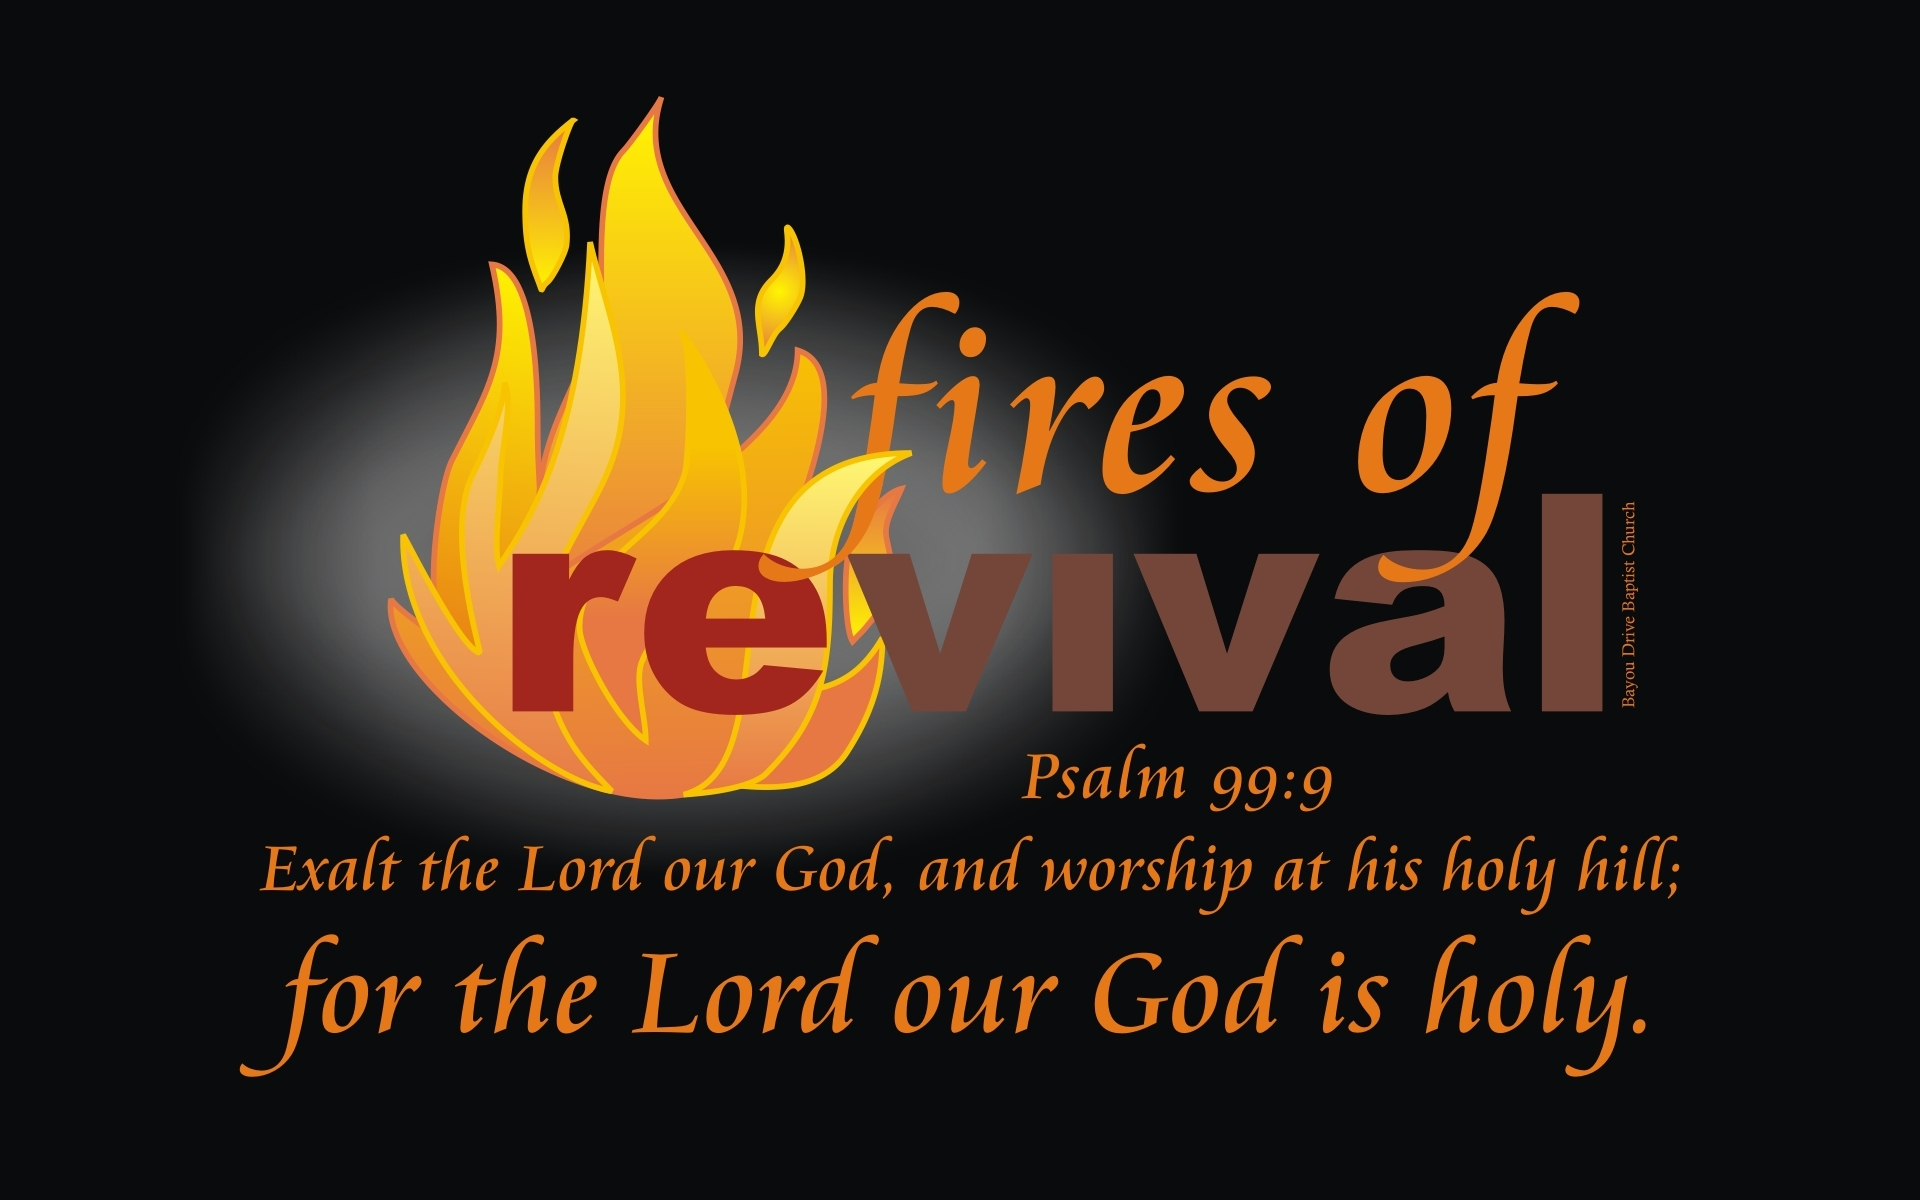 Worship clipart revival. Aspect wallpaper free images